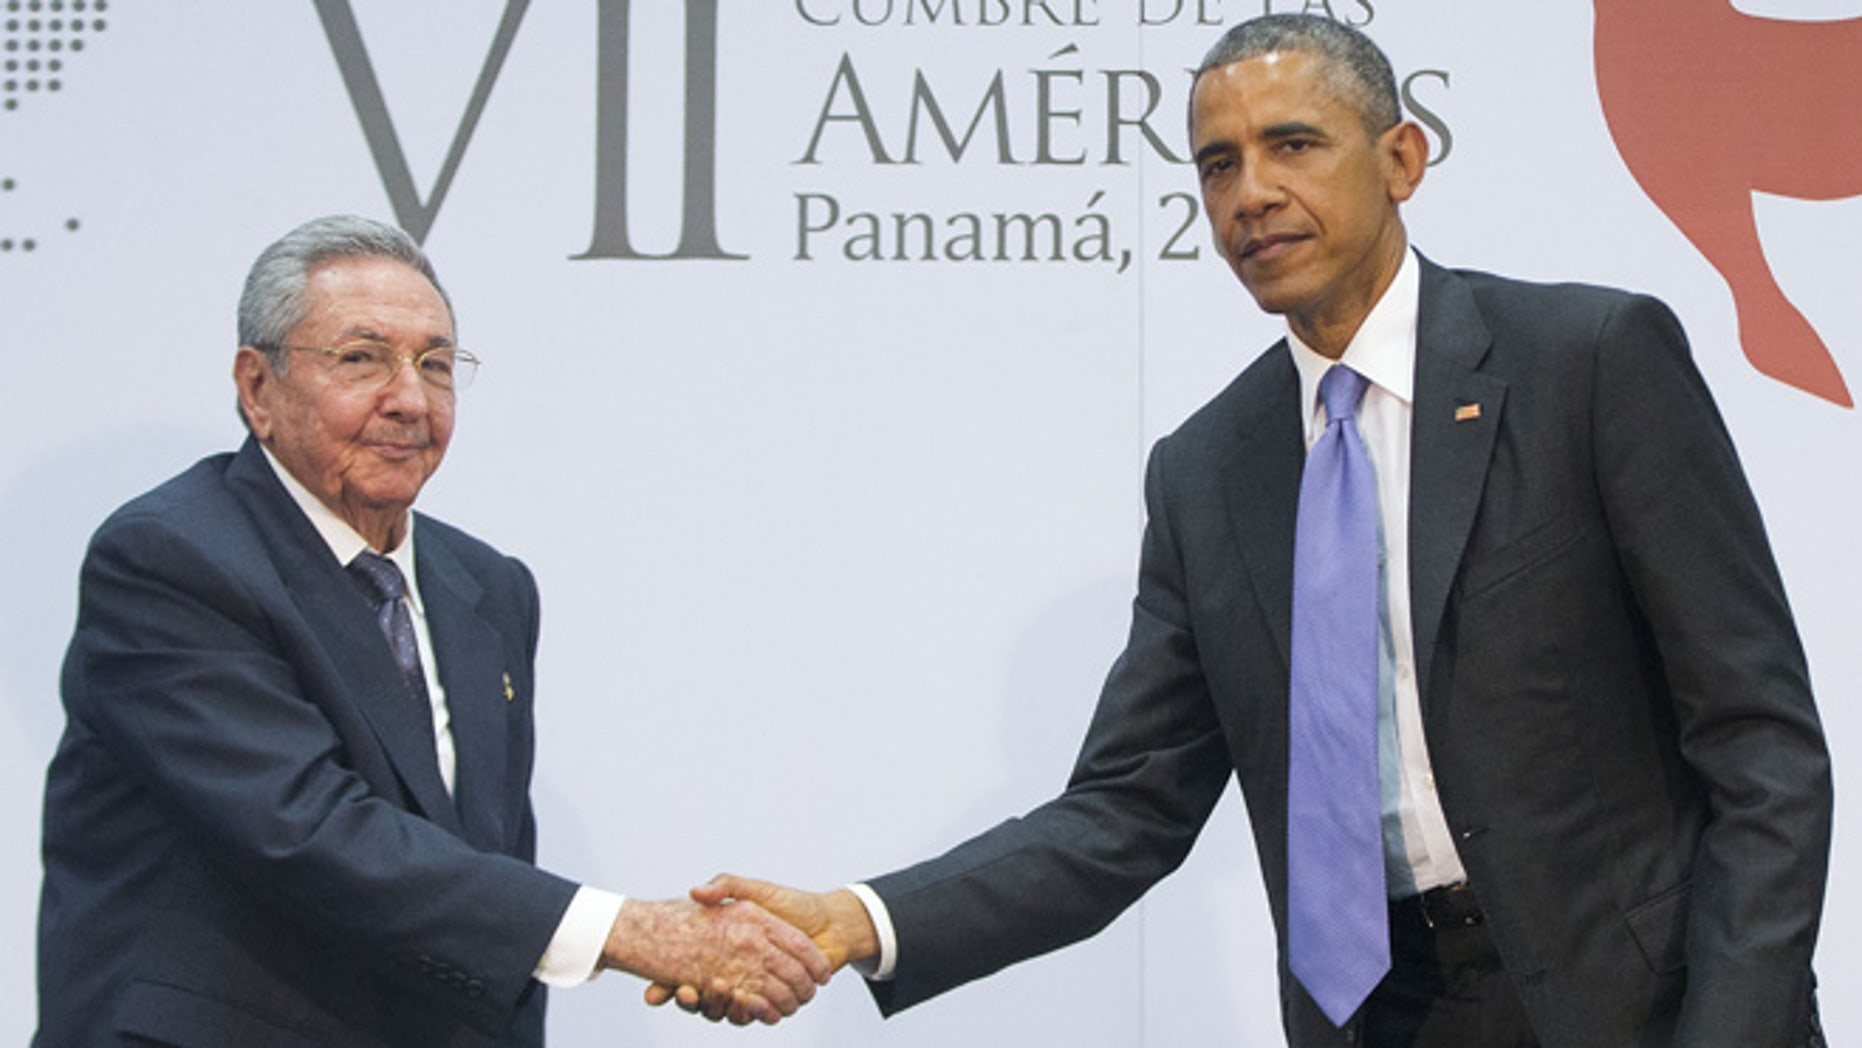 Apr. 11, 2015: US President Barack Obama and Cuban President Raul Castro shake hands during their meeting at the Summit of the Americas in Panama City, Panama. (AP)